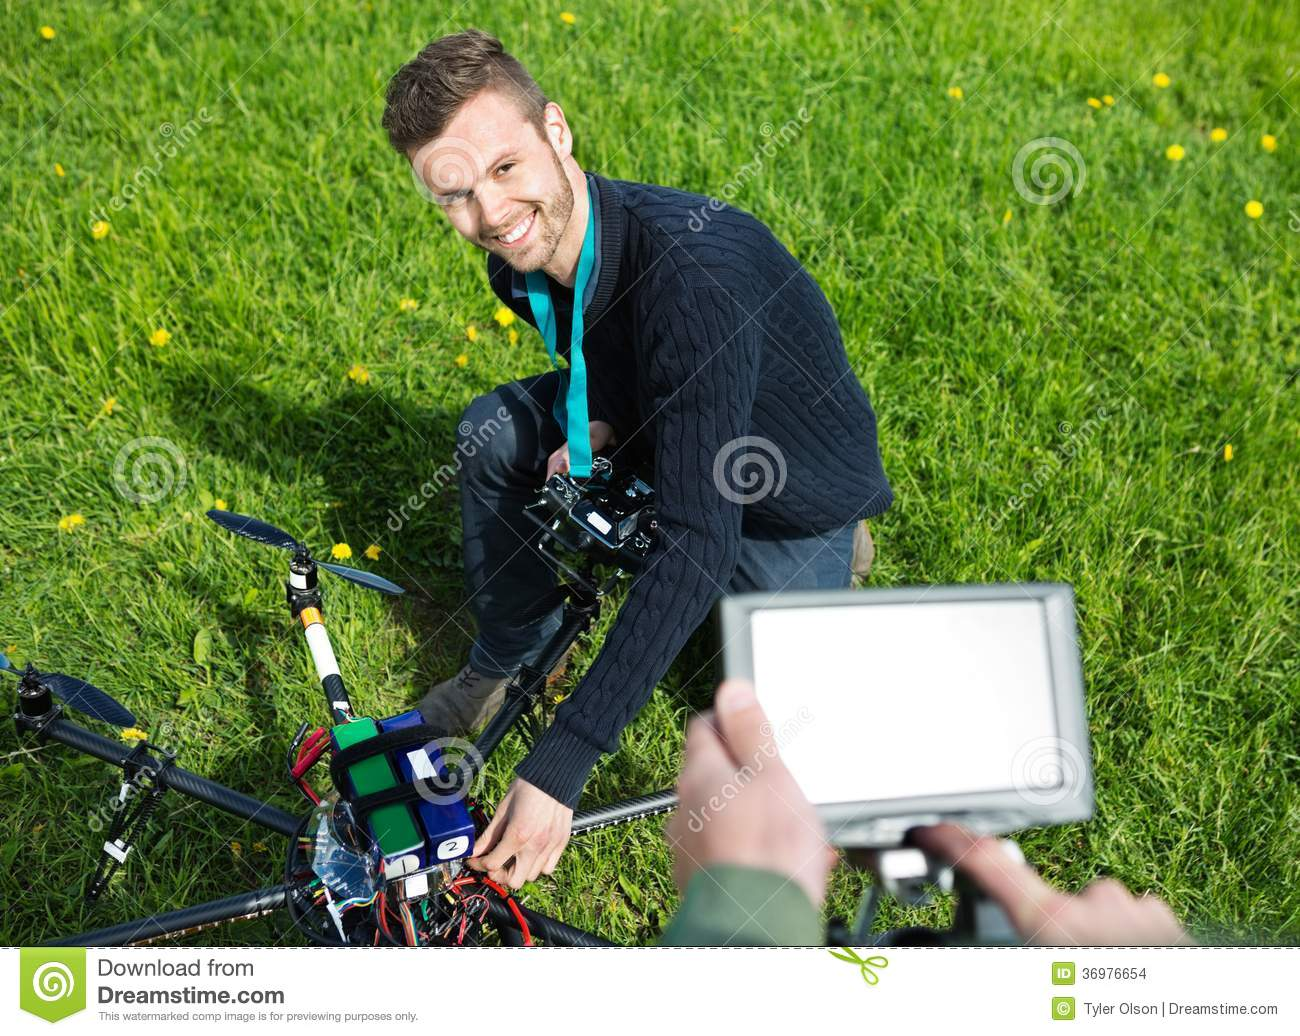 Engineer Fixing UAV Helicopter in Park